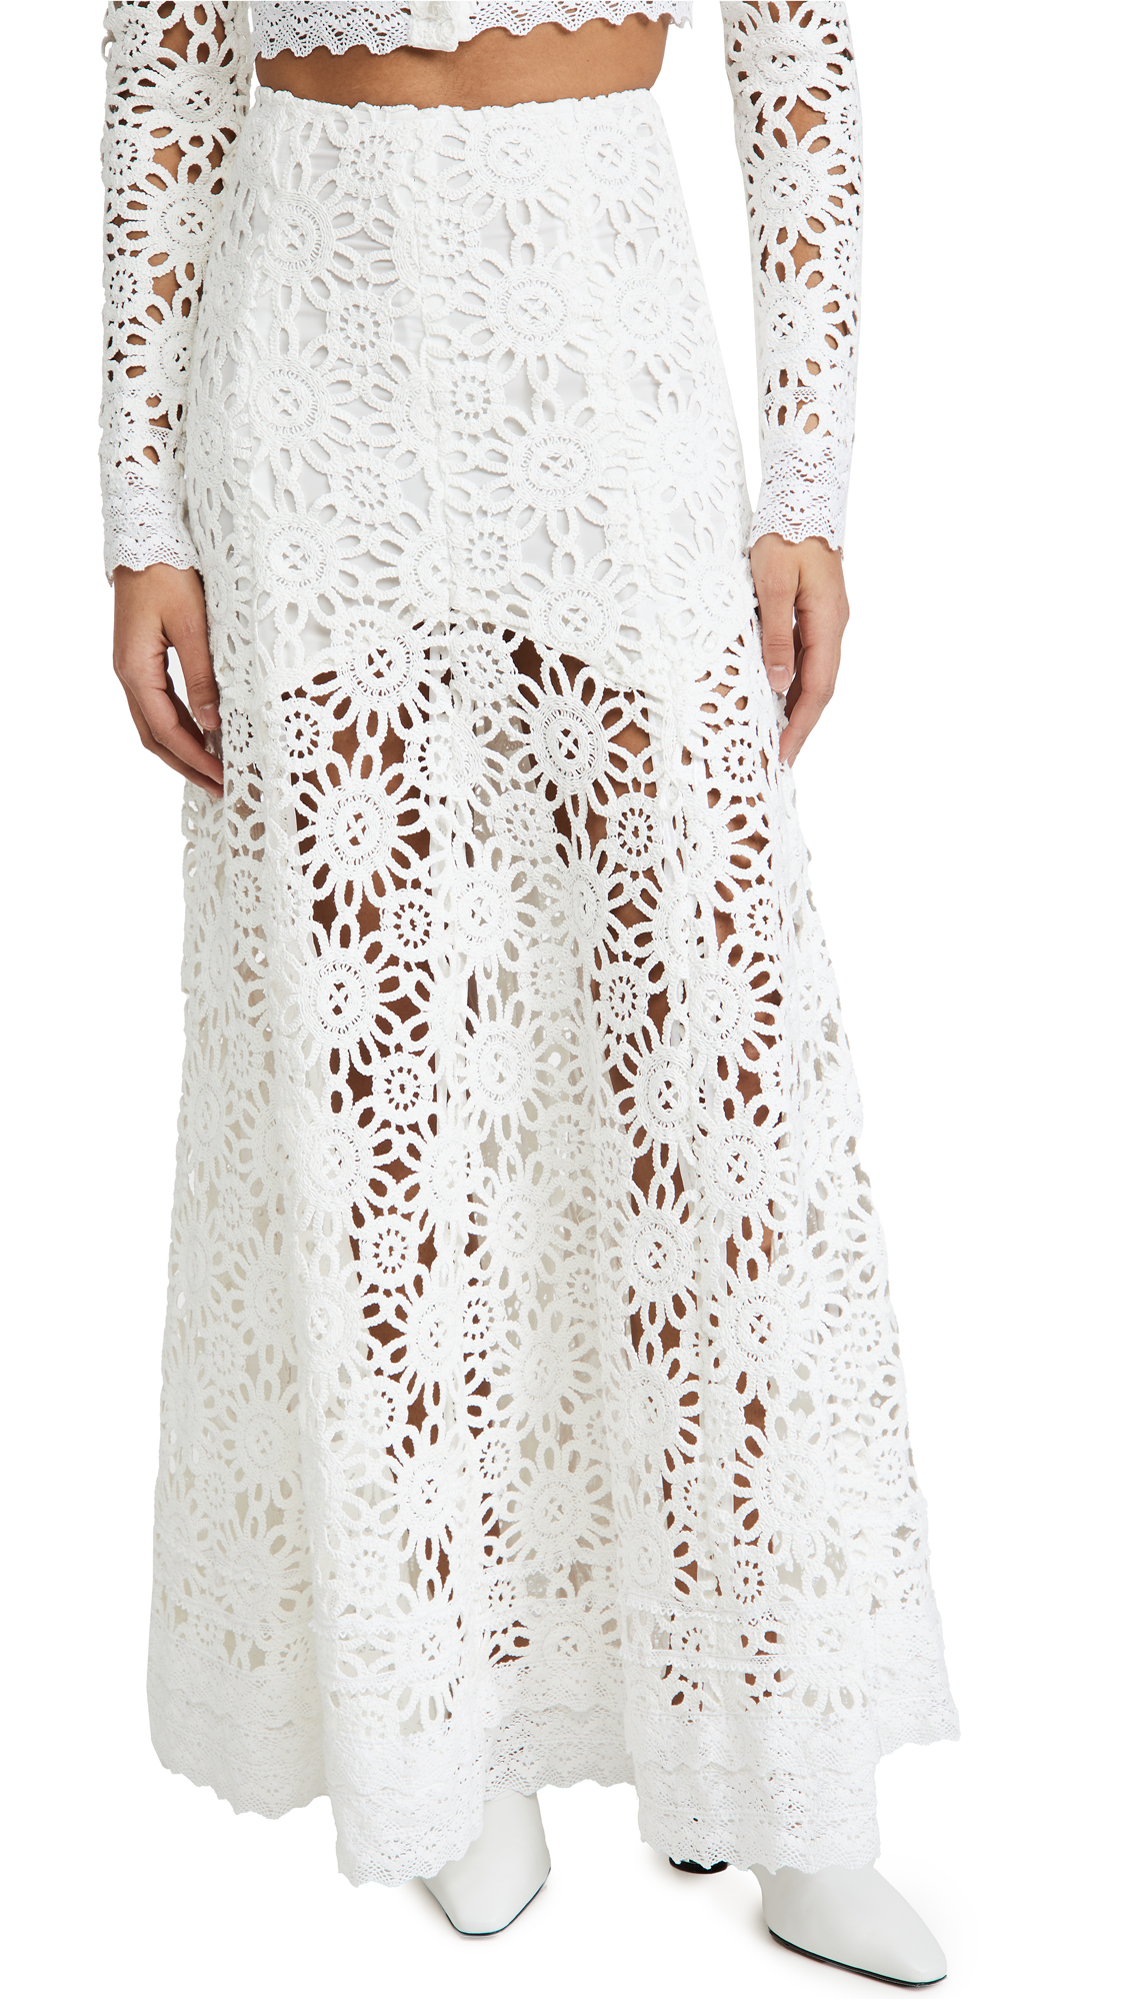 macgraw Noble Skirt in Ivory